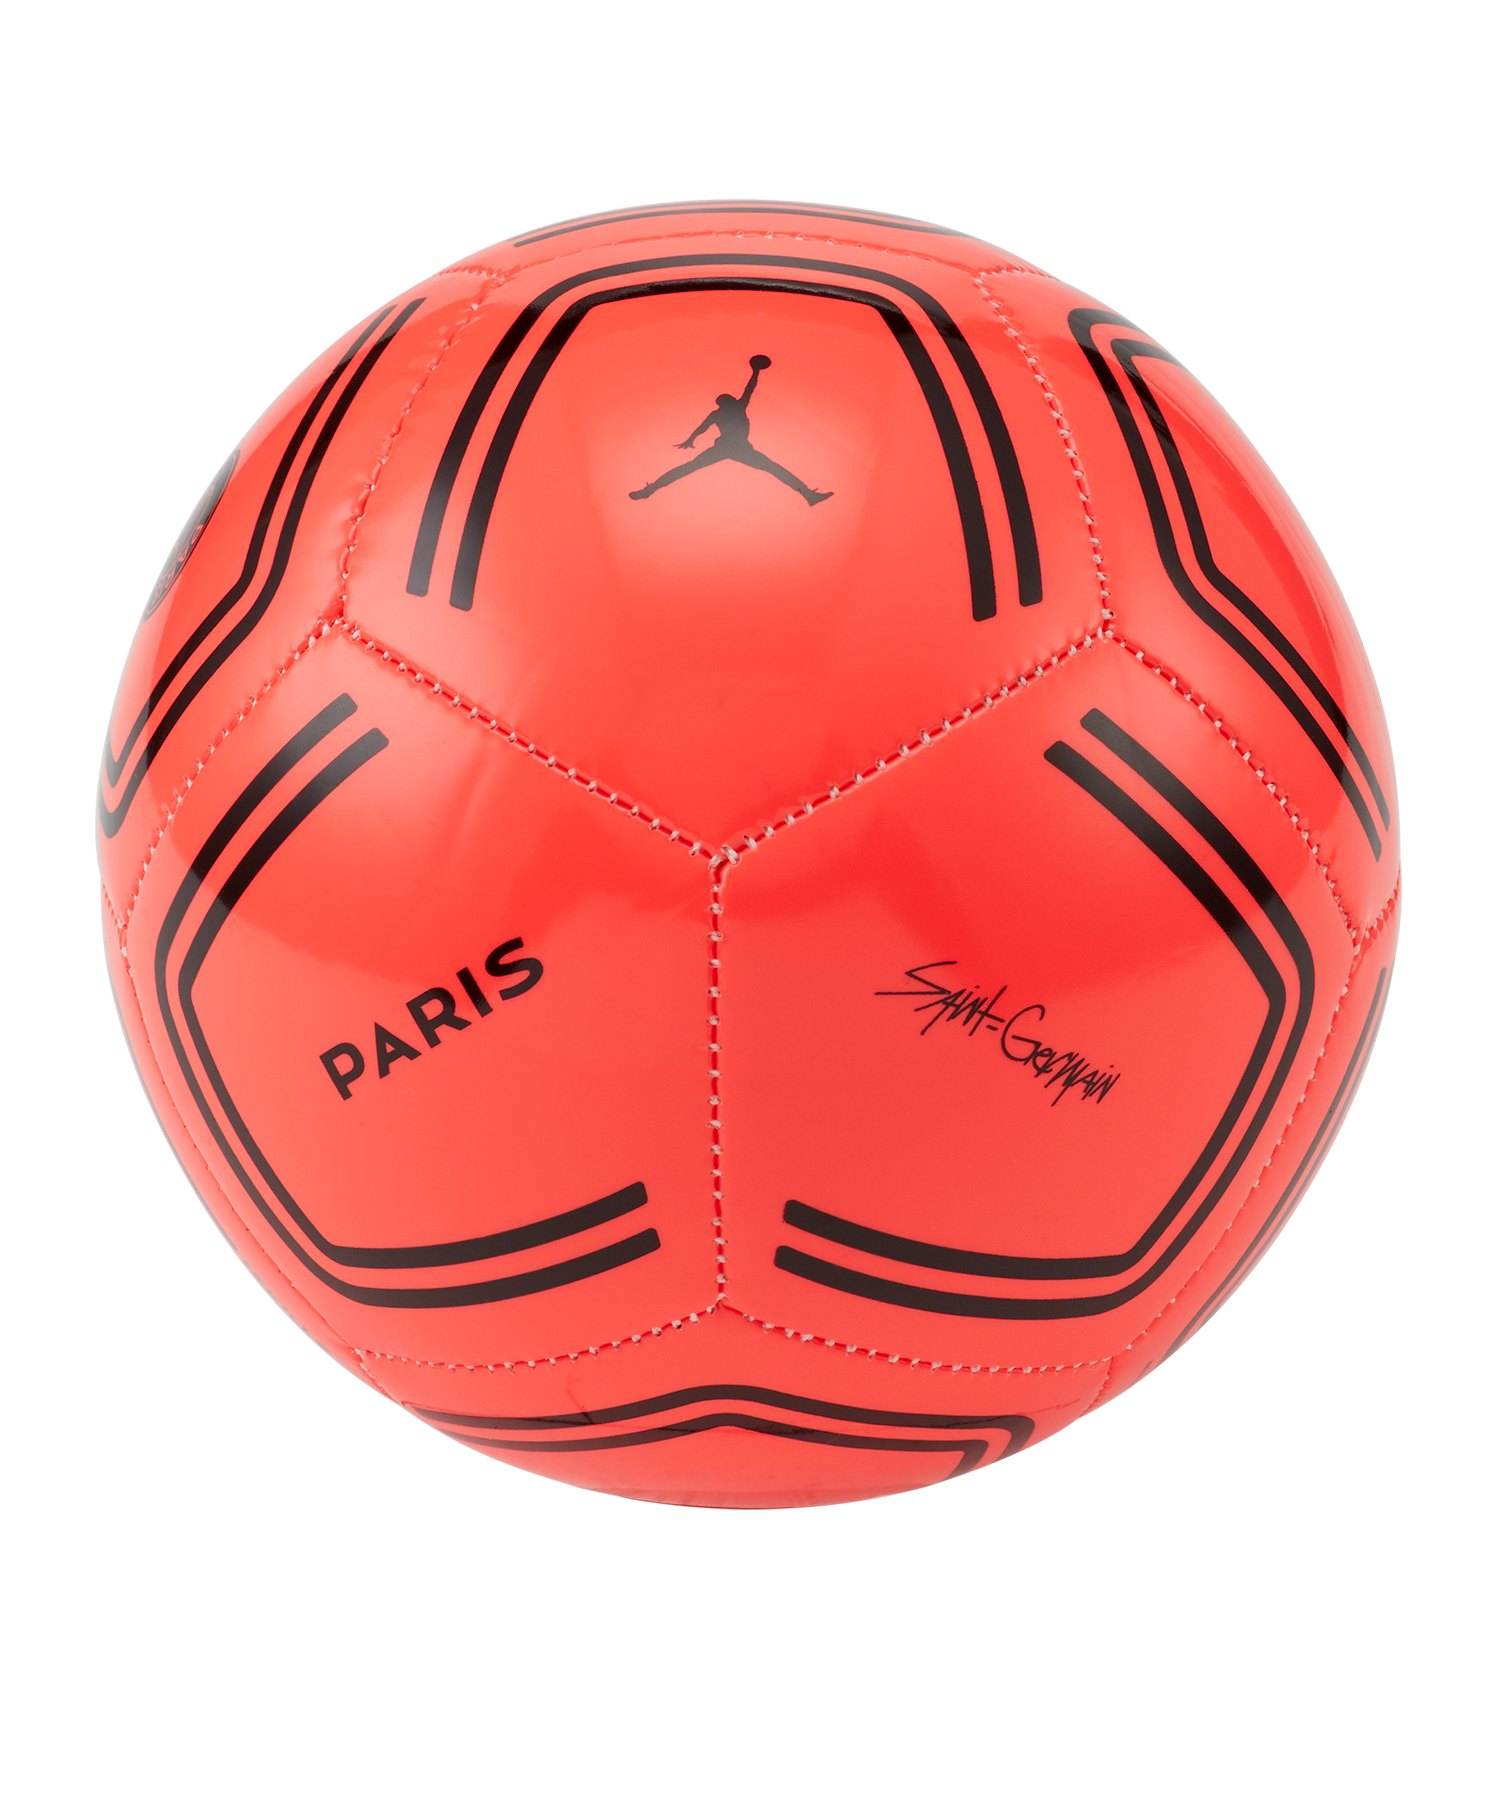 Jordan Paris St. Germain Skills Miniball F610 - orange